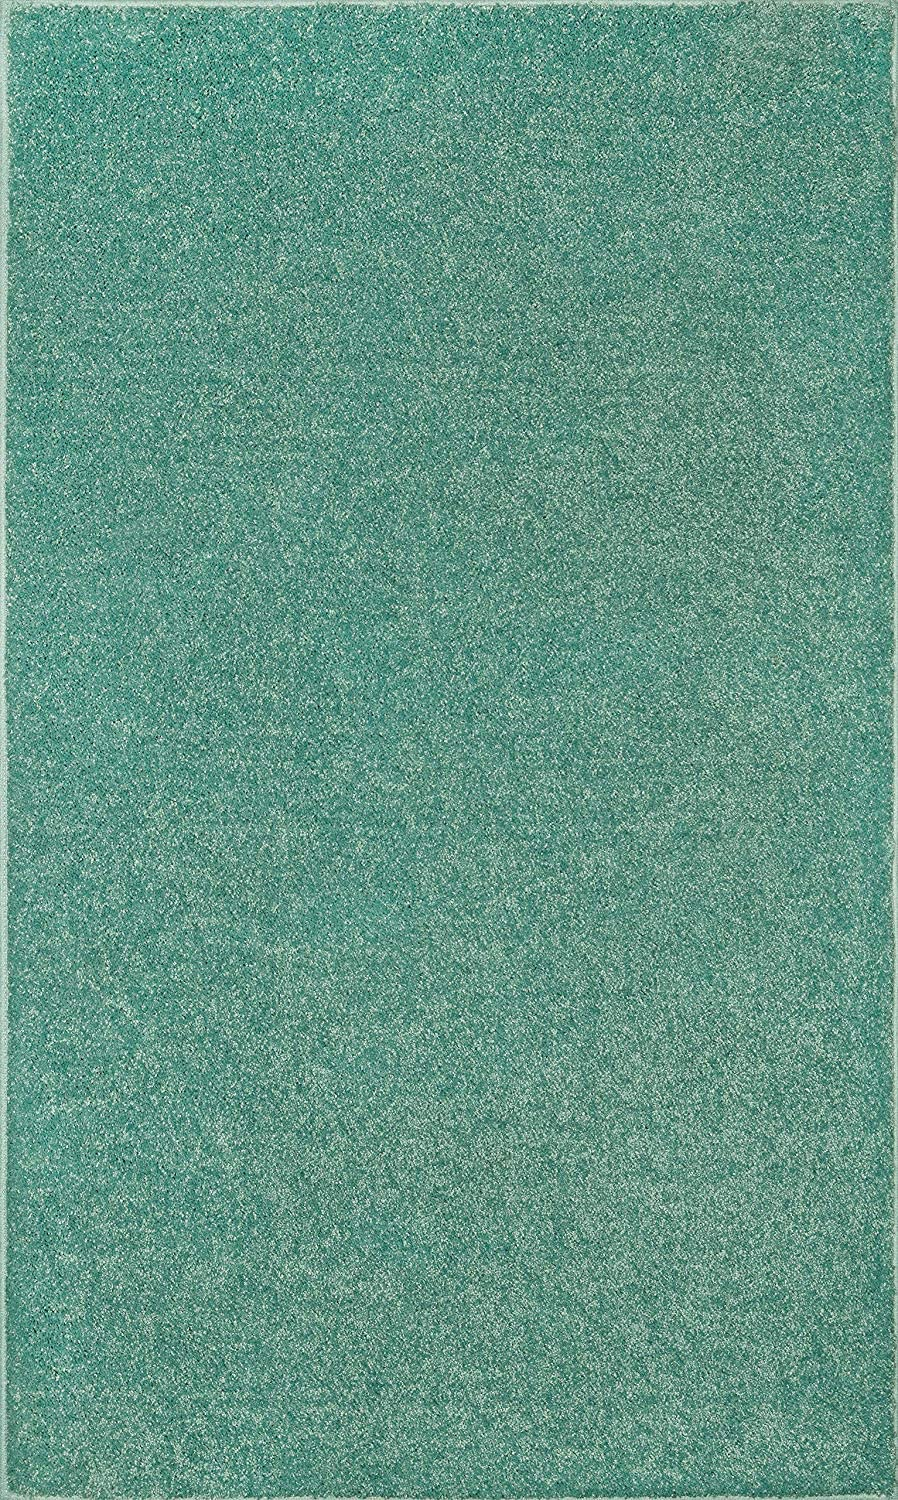 Solid Teal Complete Free Shipping Color Oversize Rug 7'x15' Area New popularity